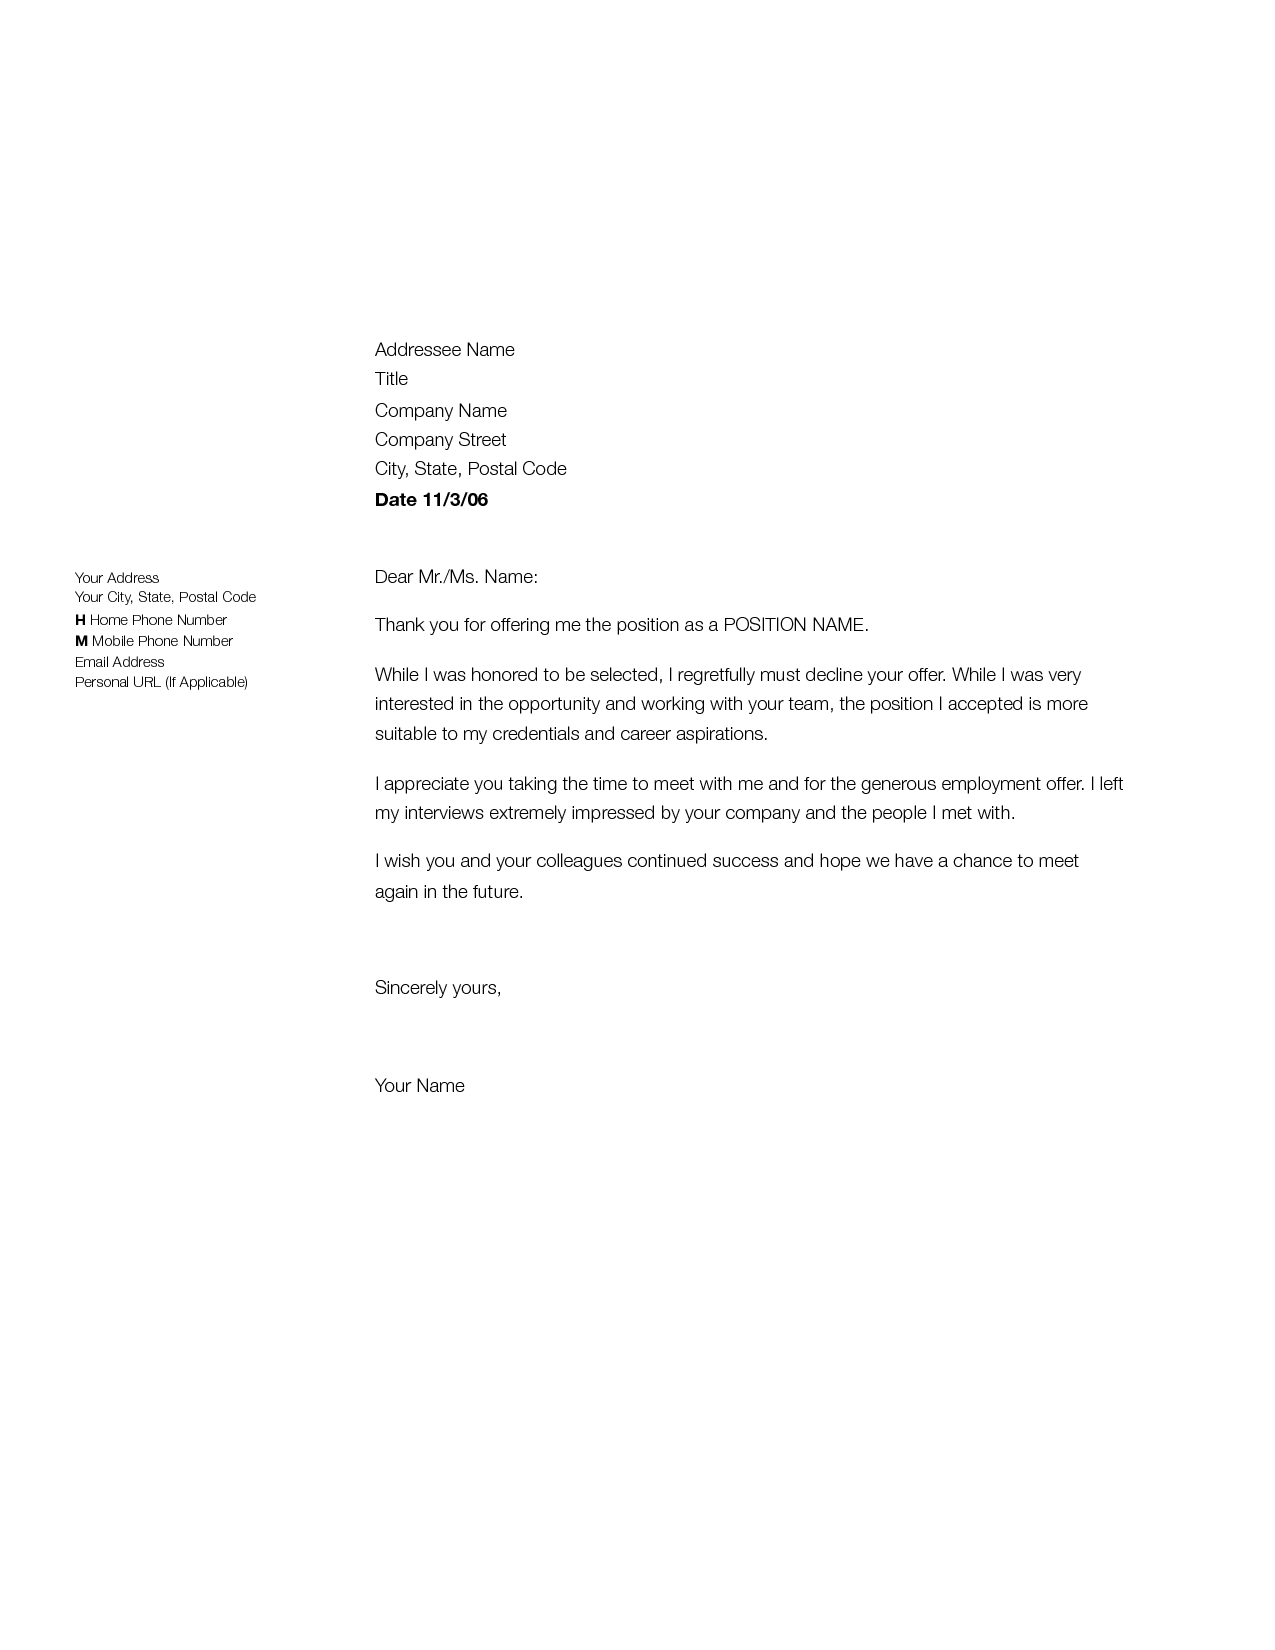 letter of rejecting a job offer